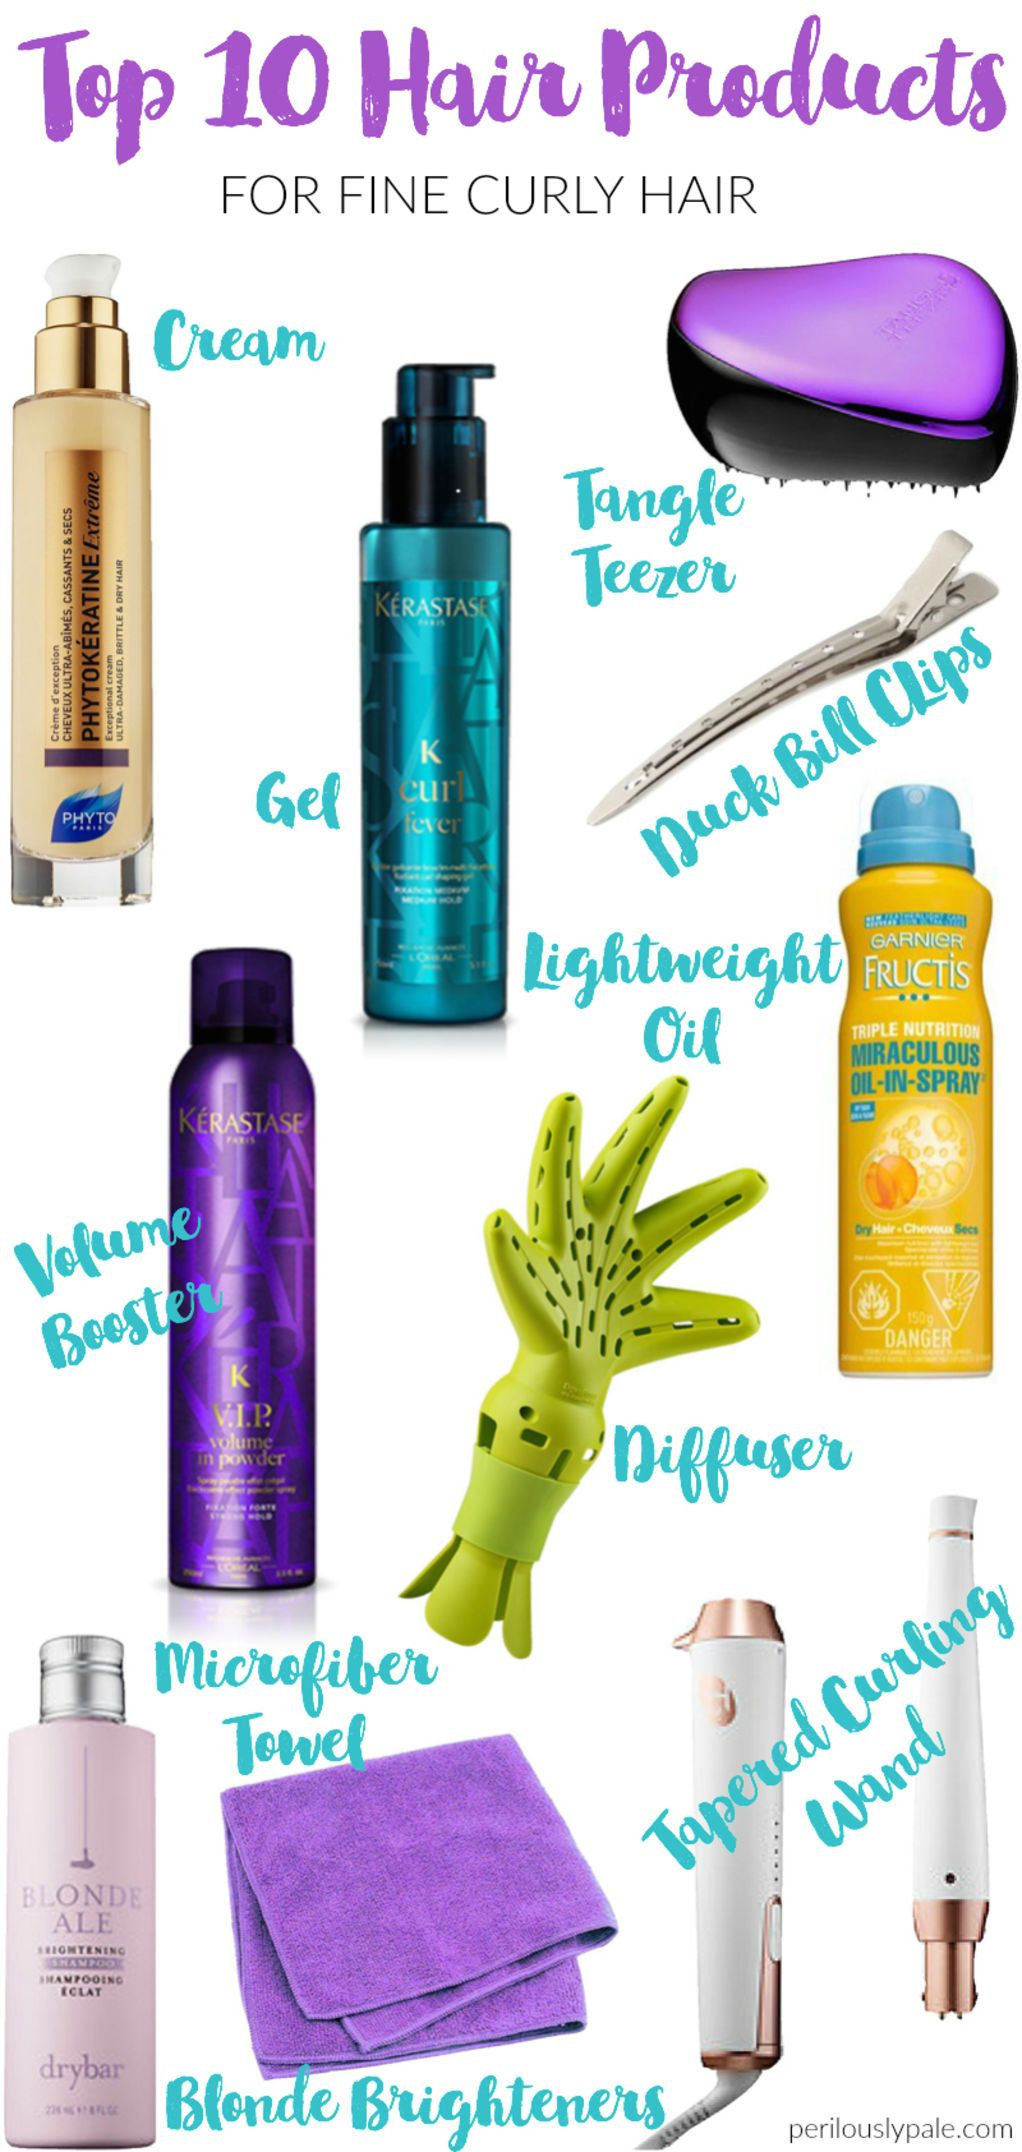 Top 10 Hair Products for Fine, Curly Hair | Perilously Pale